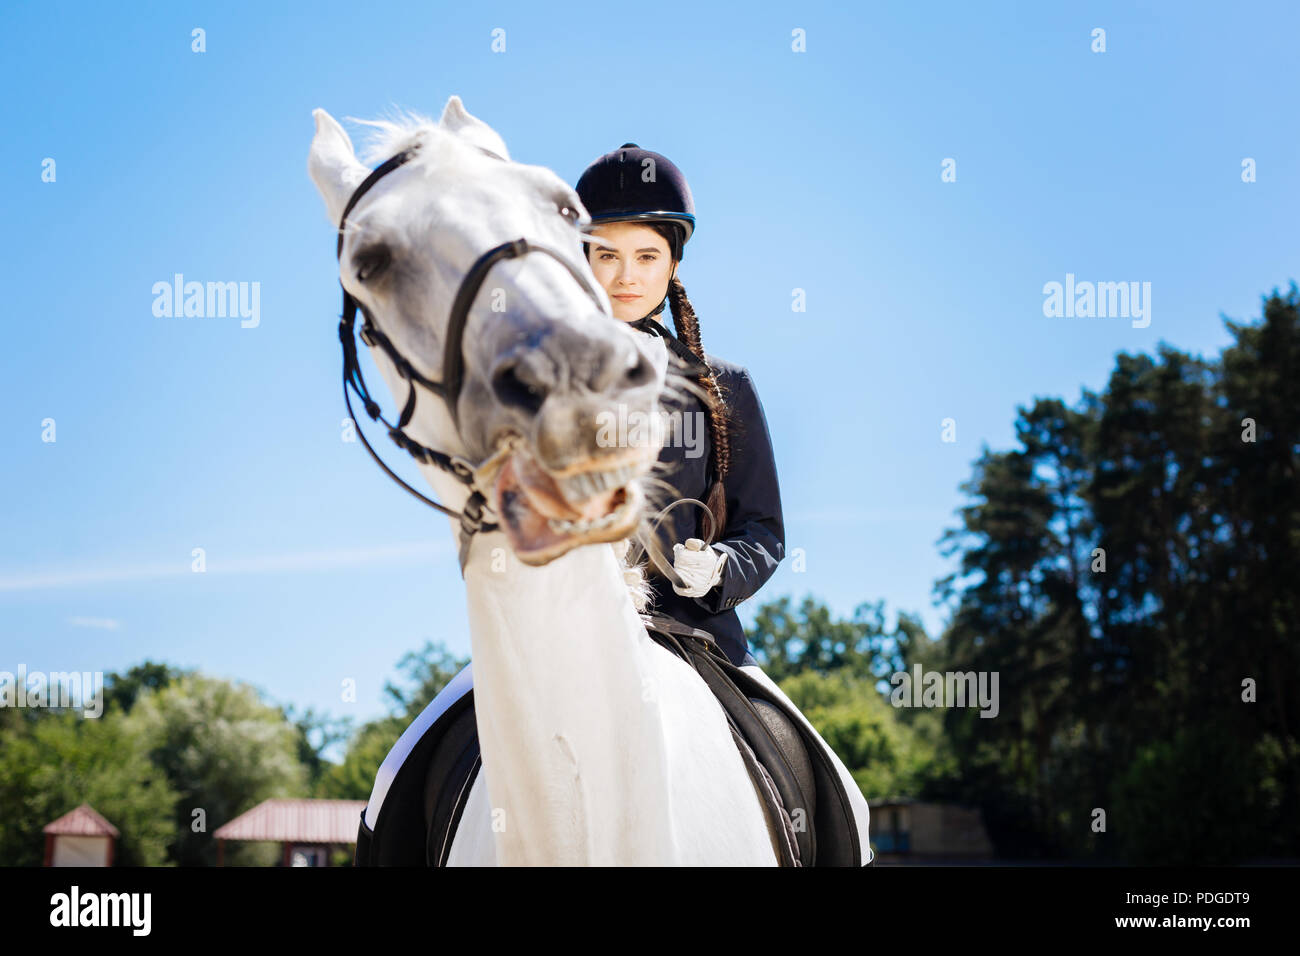 Horsewoman with long braid wearing helmet riding her horse - Stock Image